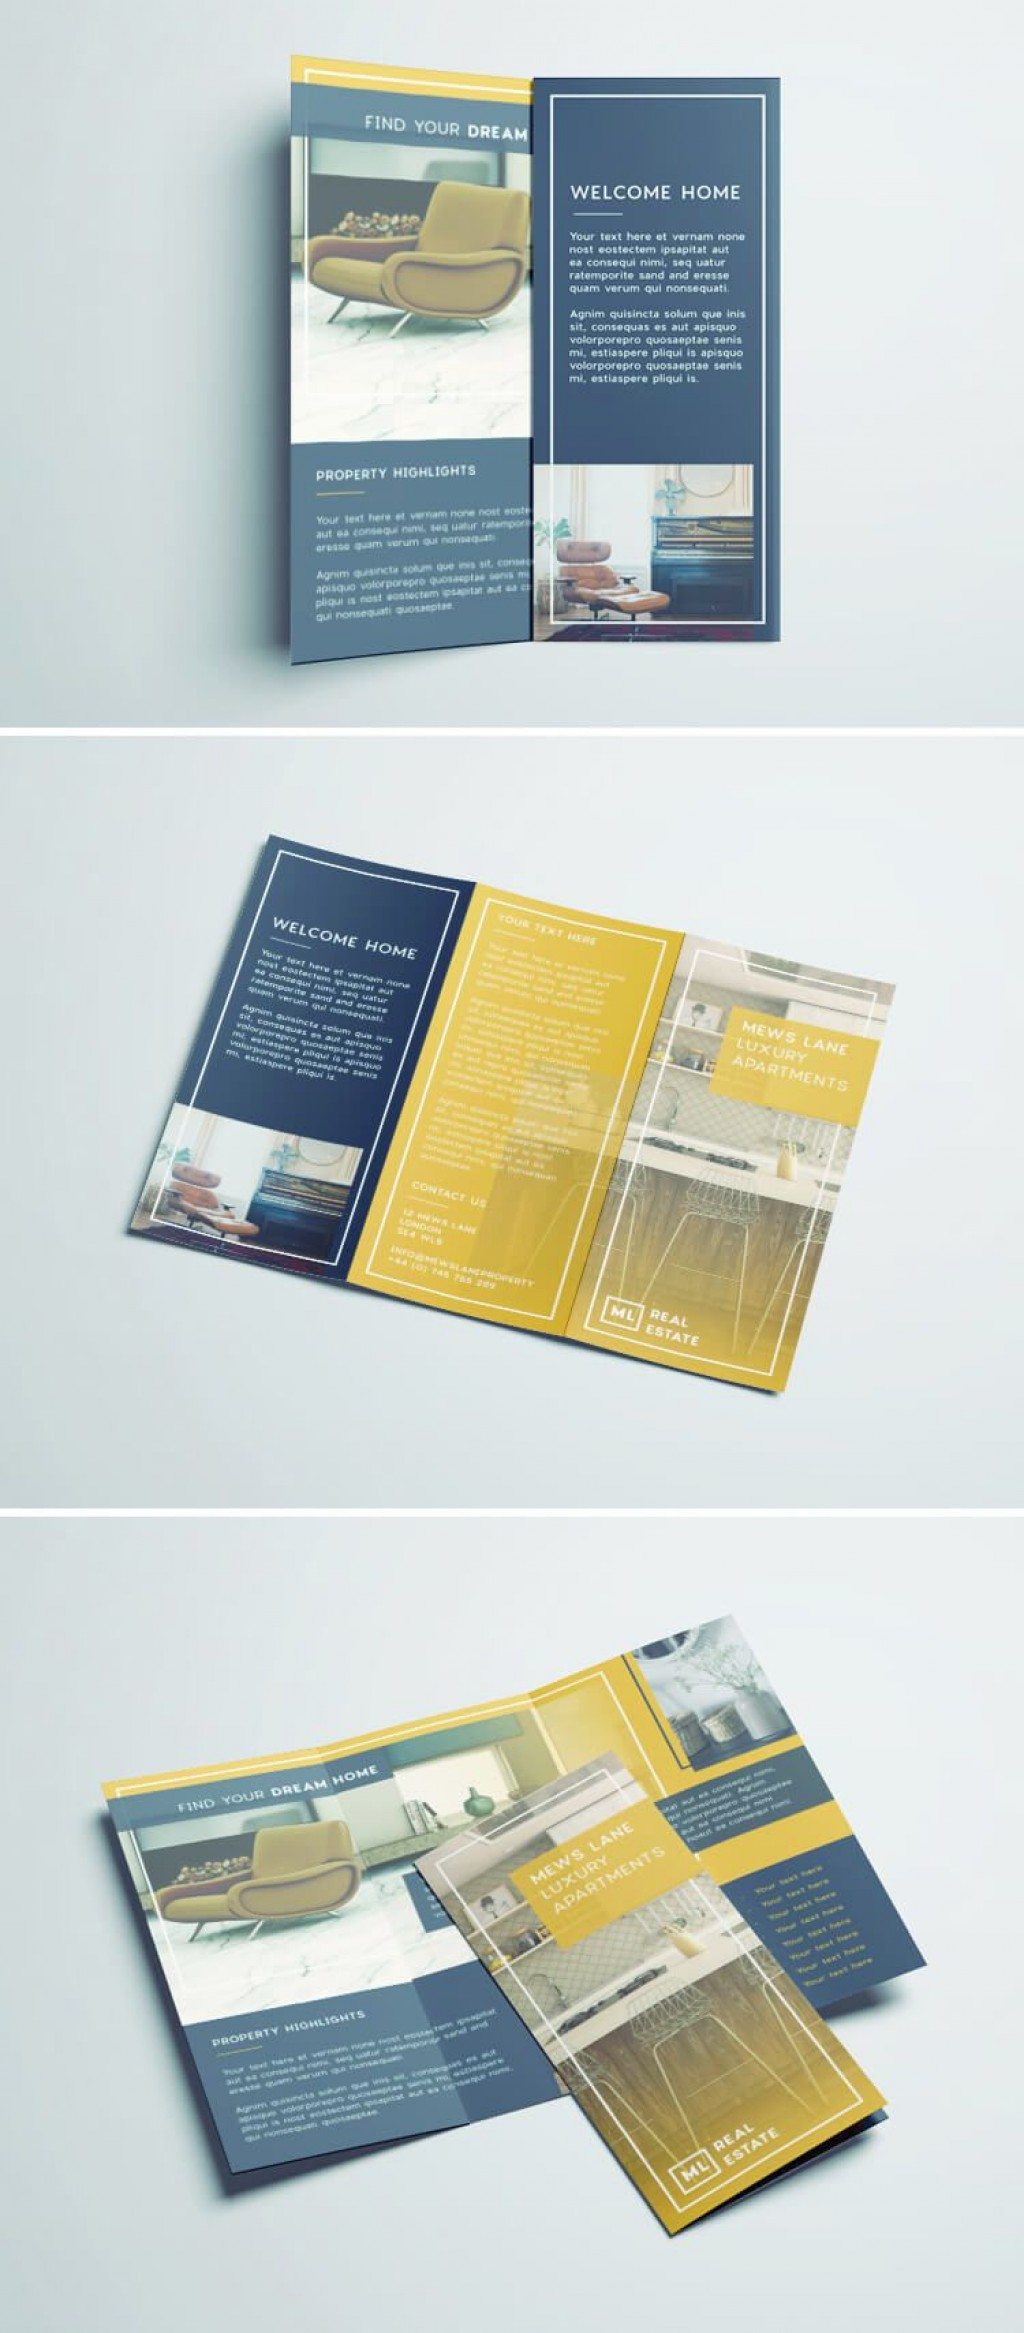 007 Amazing Tri Fold Brochure Indesign Template Example  Free AdobeLarge